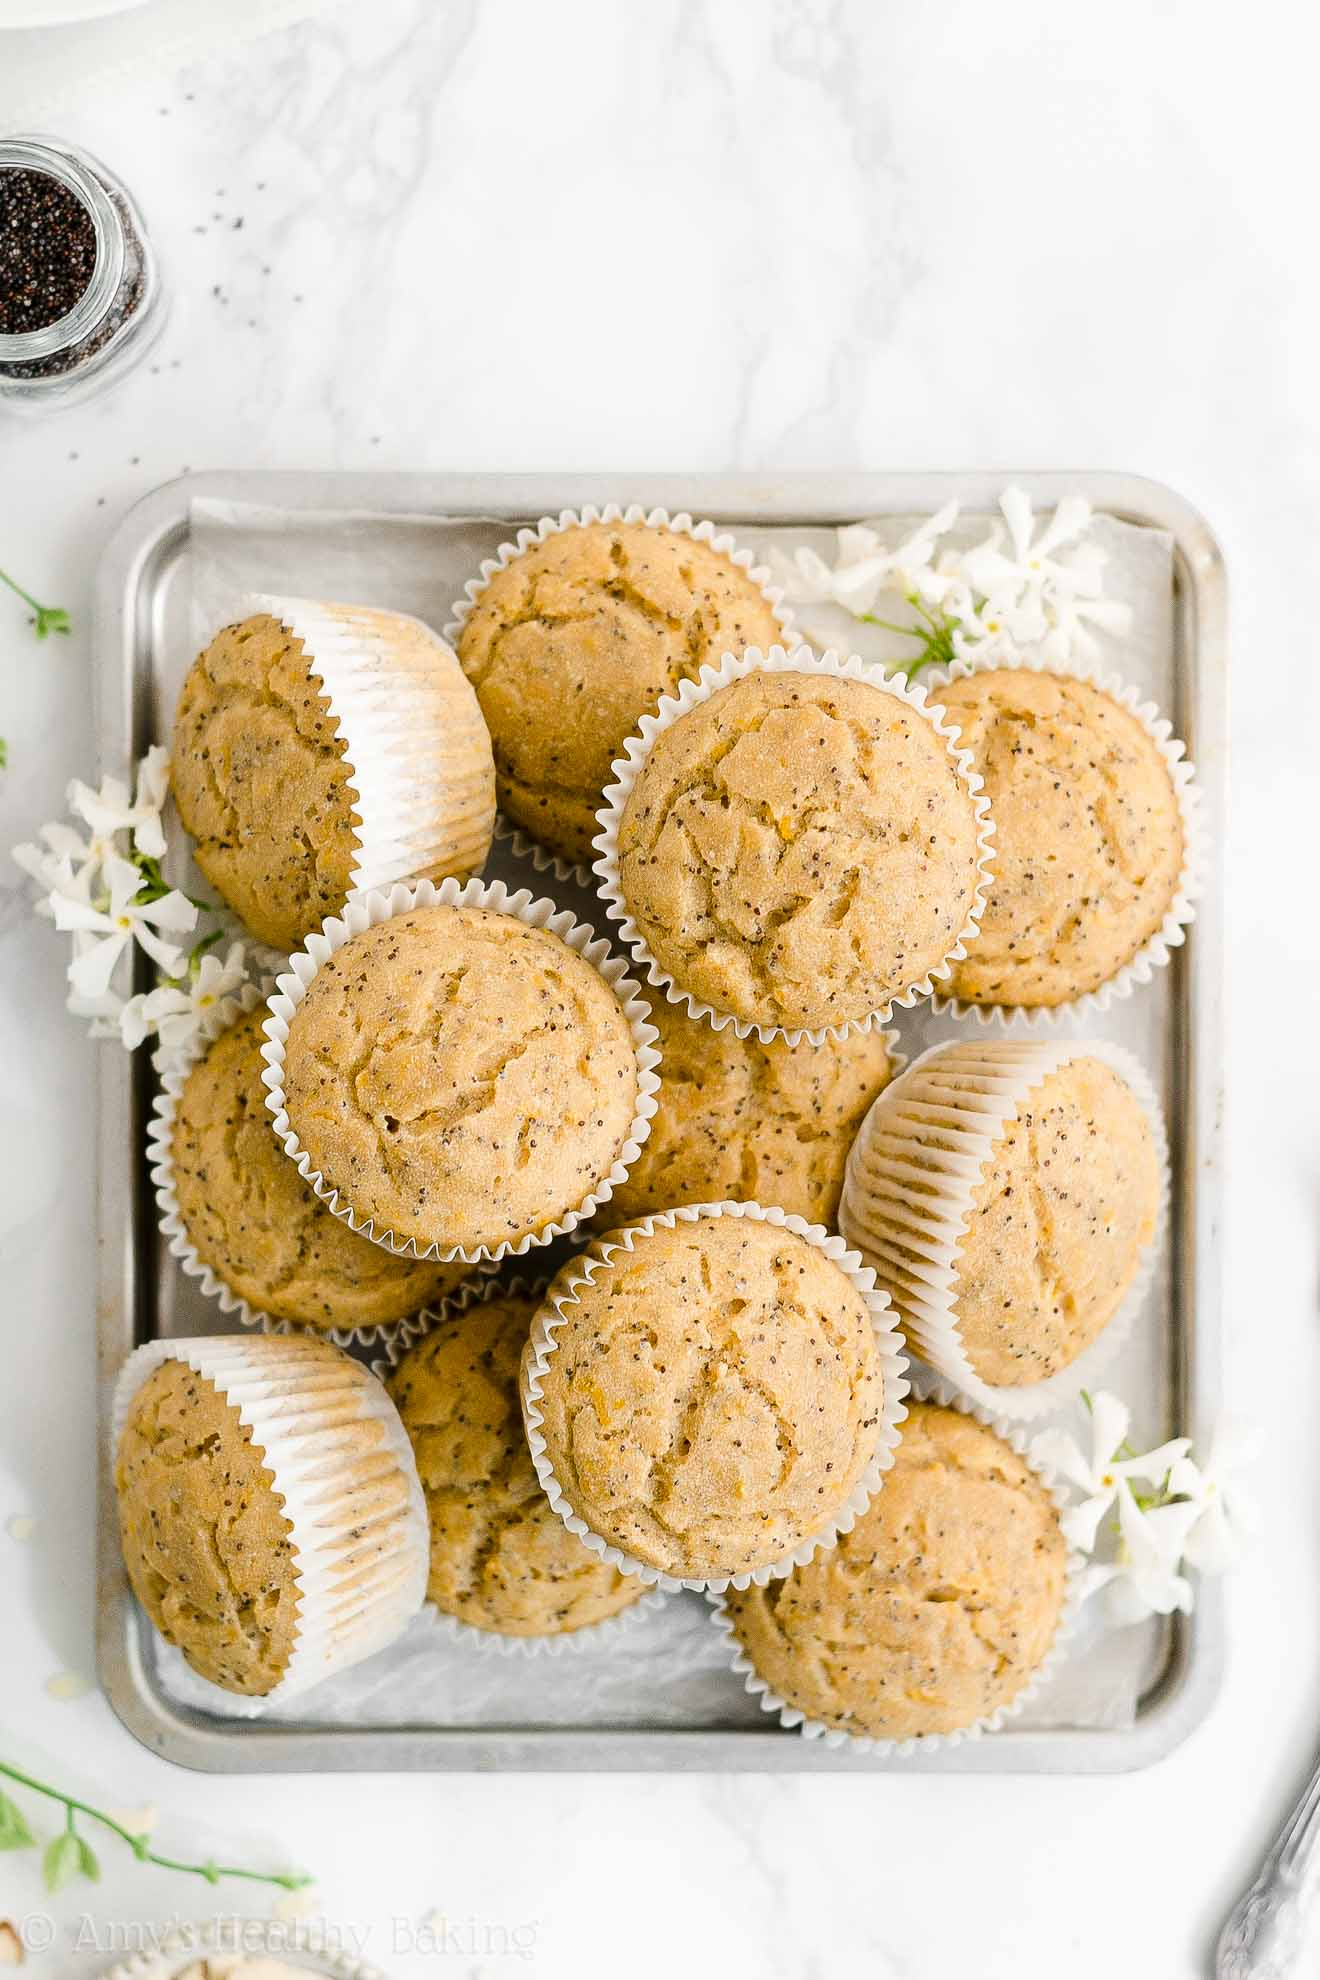 ULTIMATE Best Ever Easy Healthy Gluten Free Vegan Lemon Poppy Seed Muffins